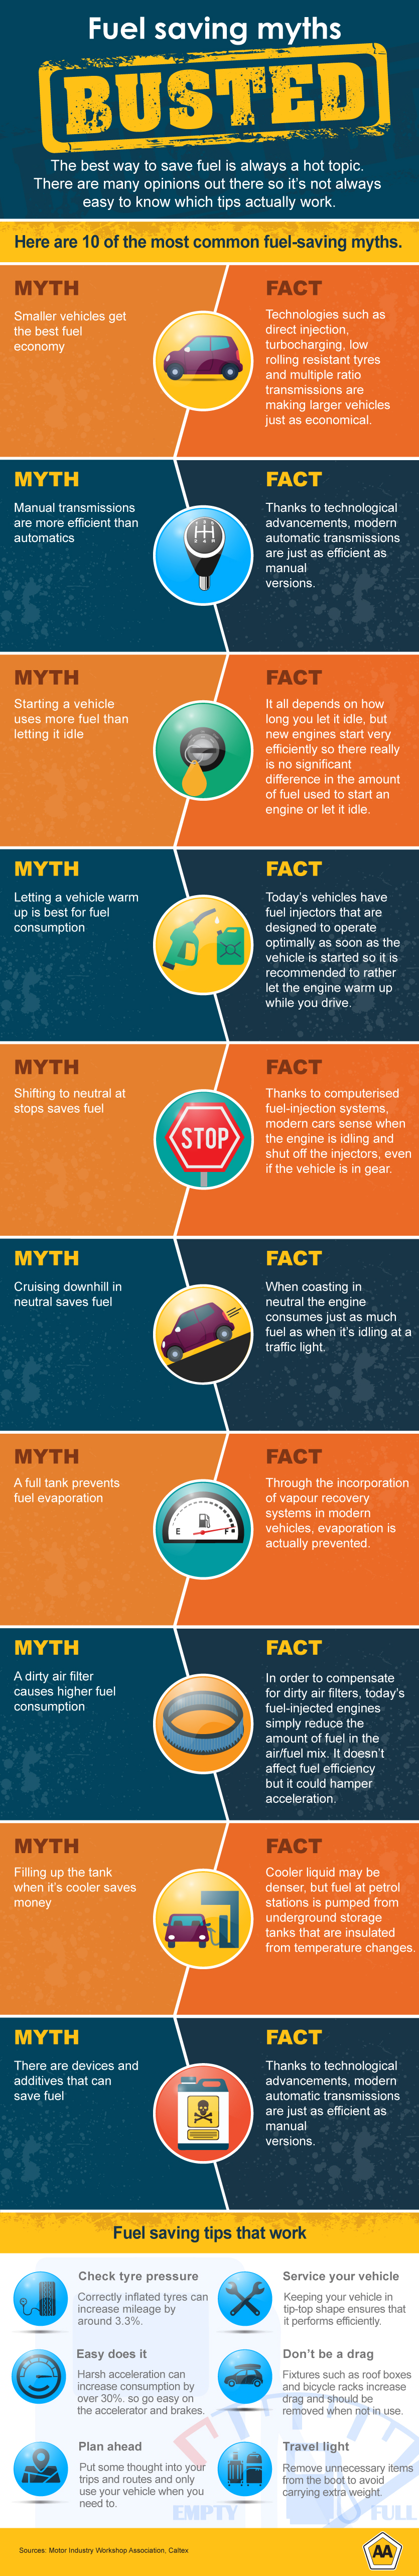 Common fuel myths, busted!